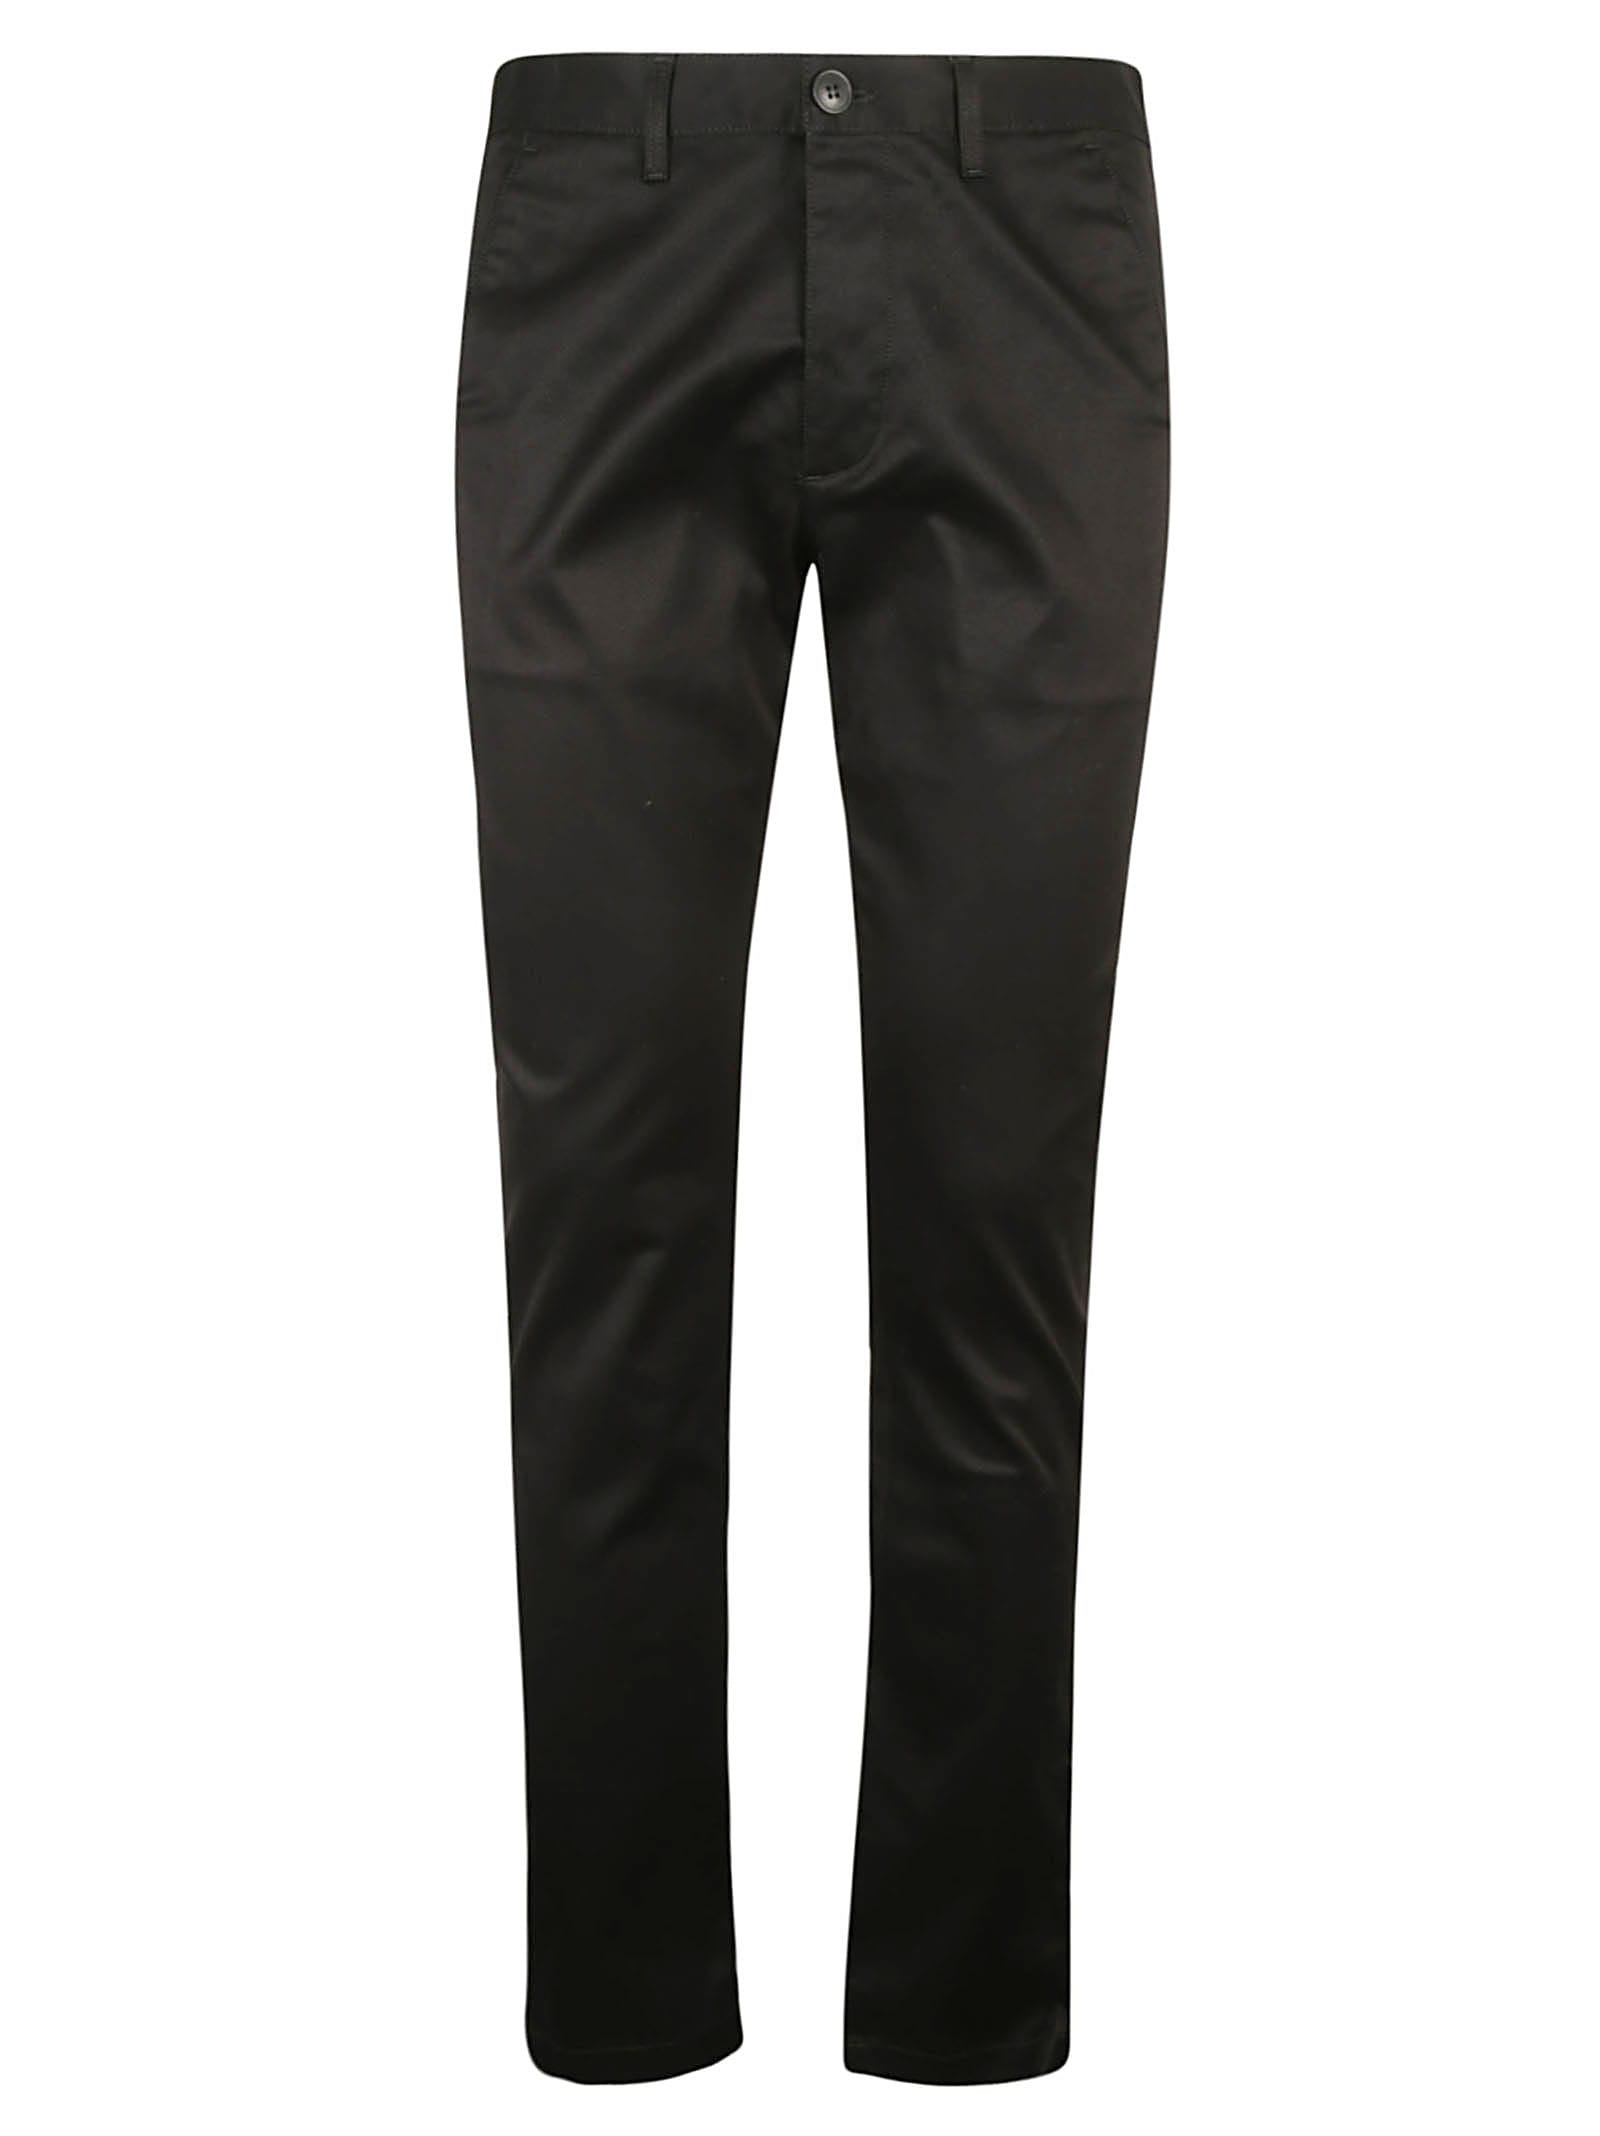 Saint Laurent Regular Fit Plain Trousers